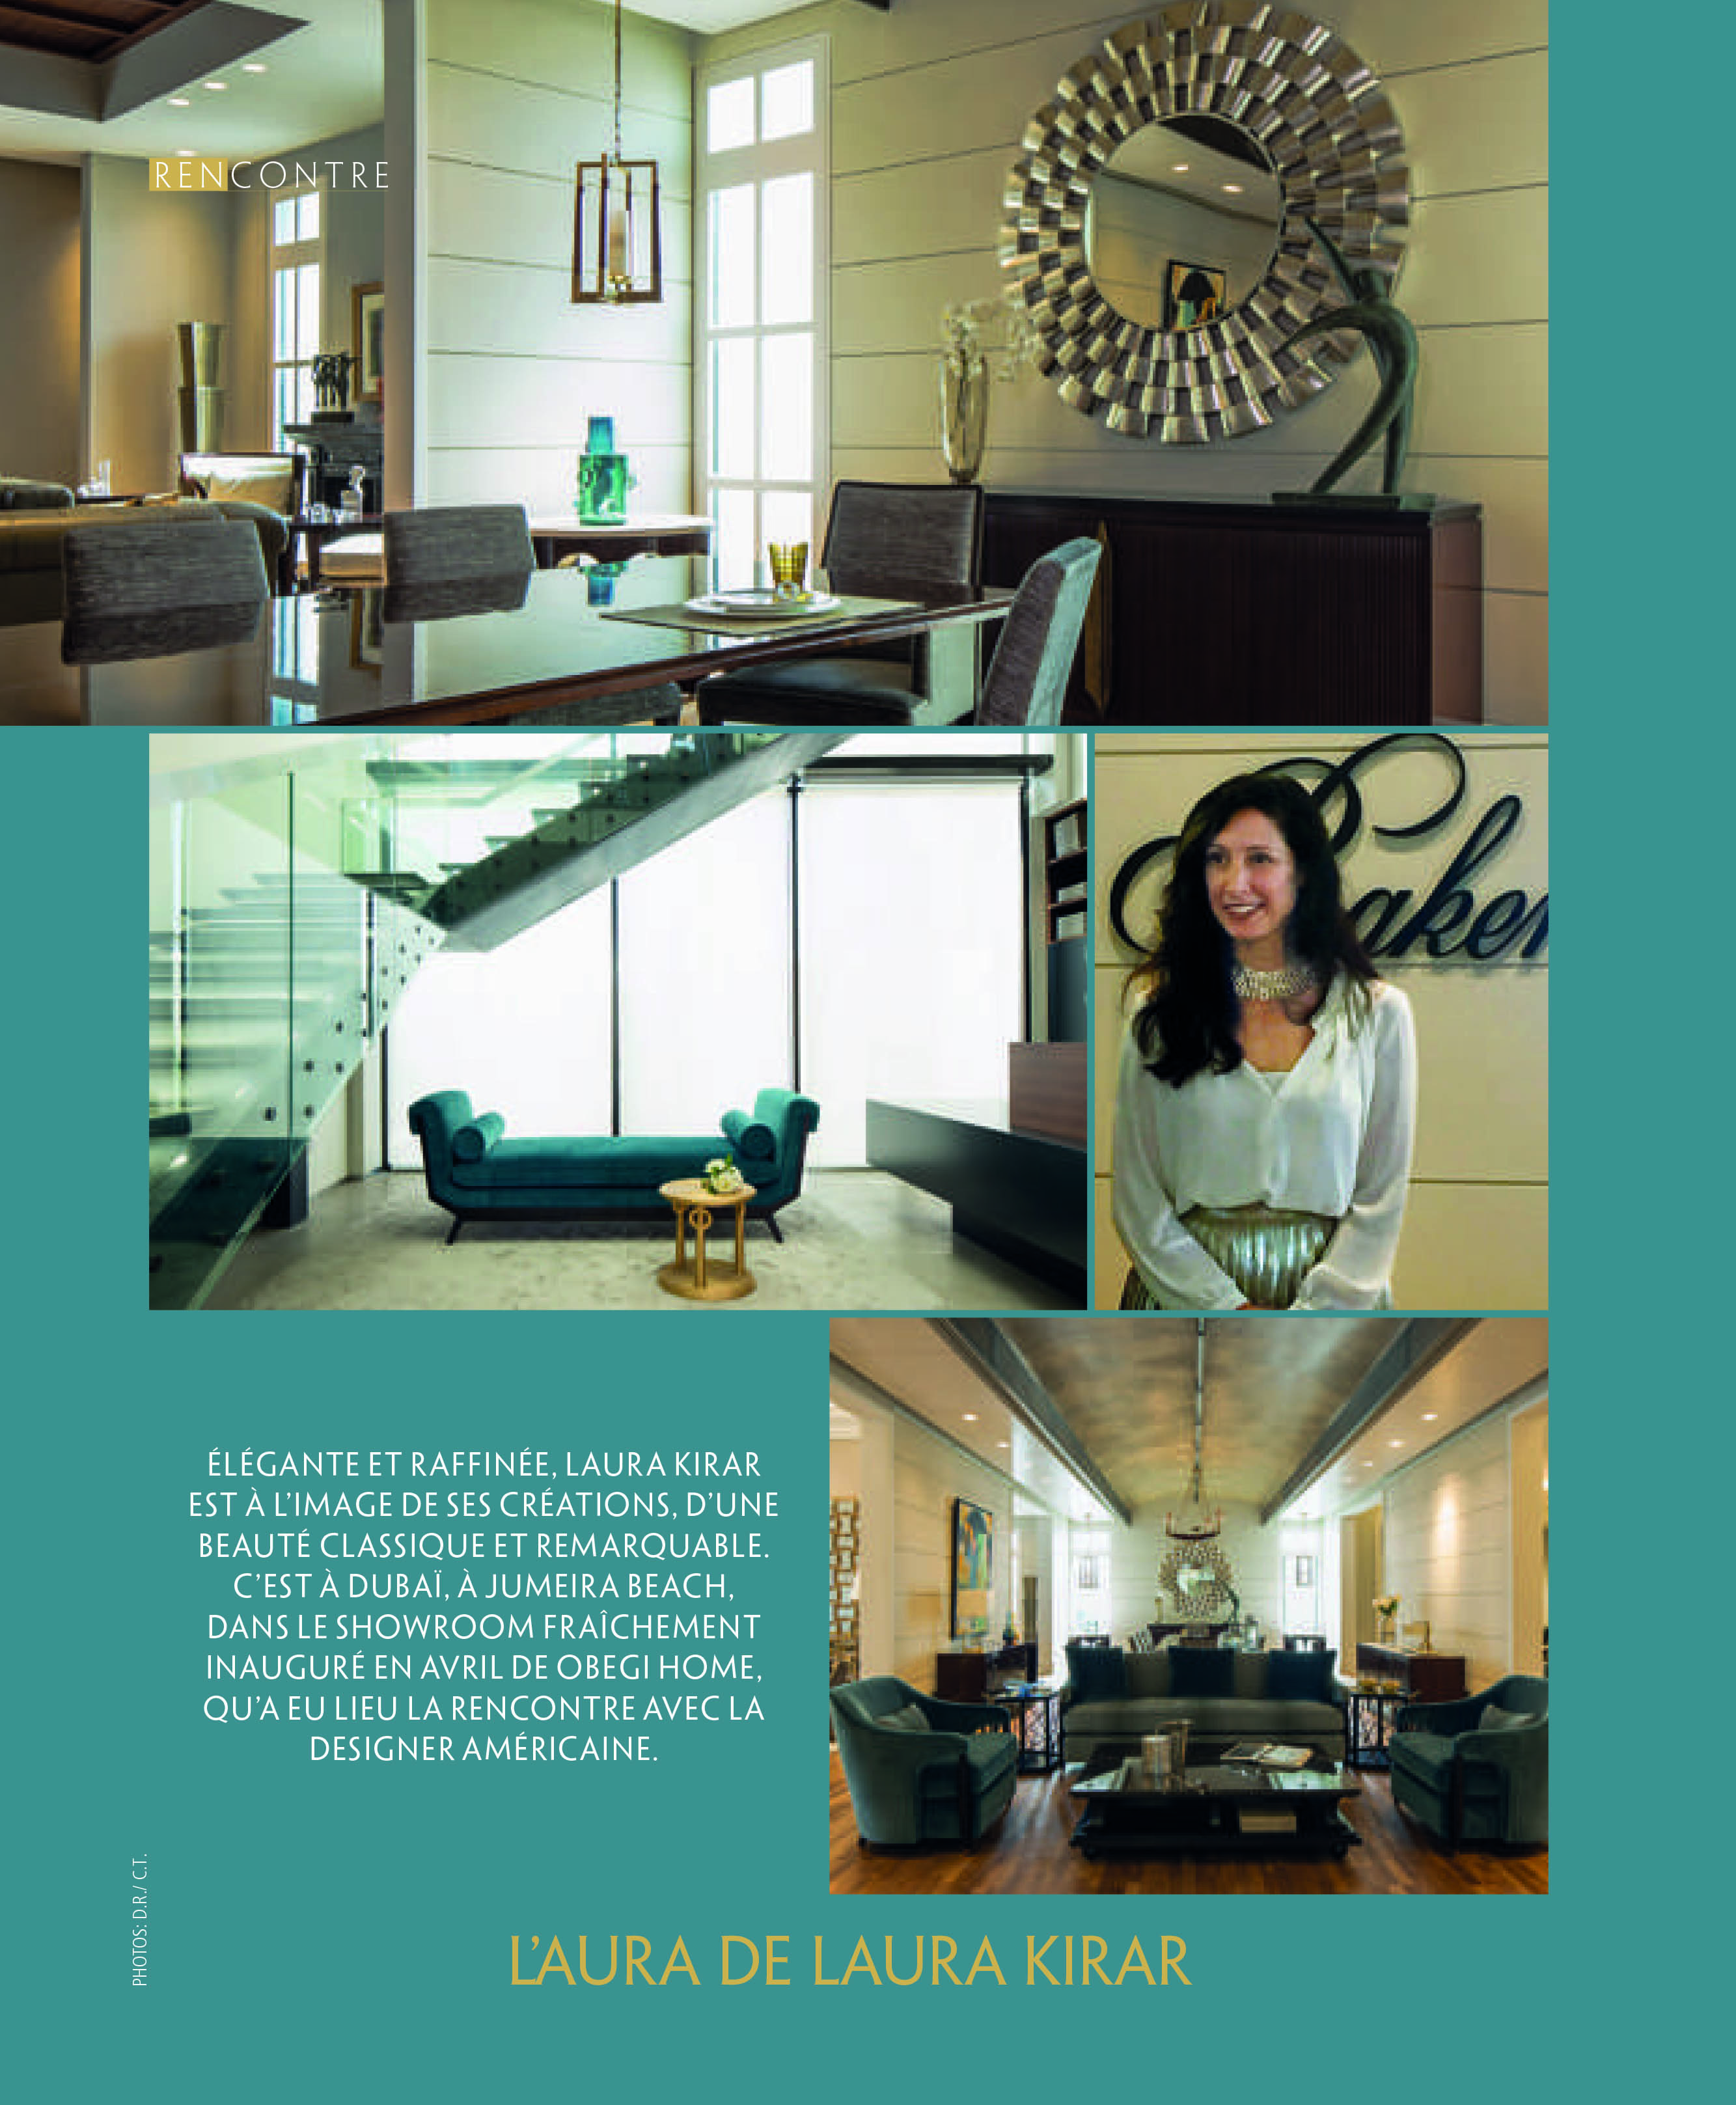 laura kirar, baker furniture, product design, interior design, middle east, lebanon, deco magazine, architecture